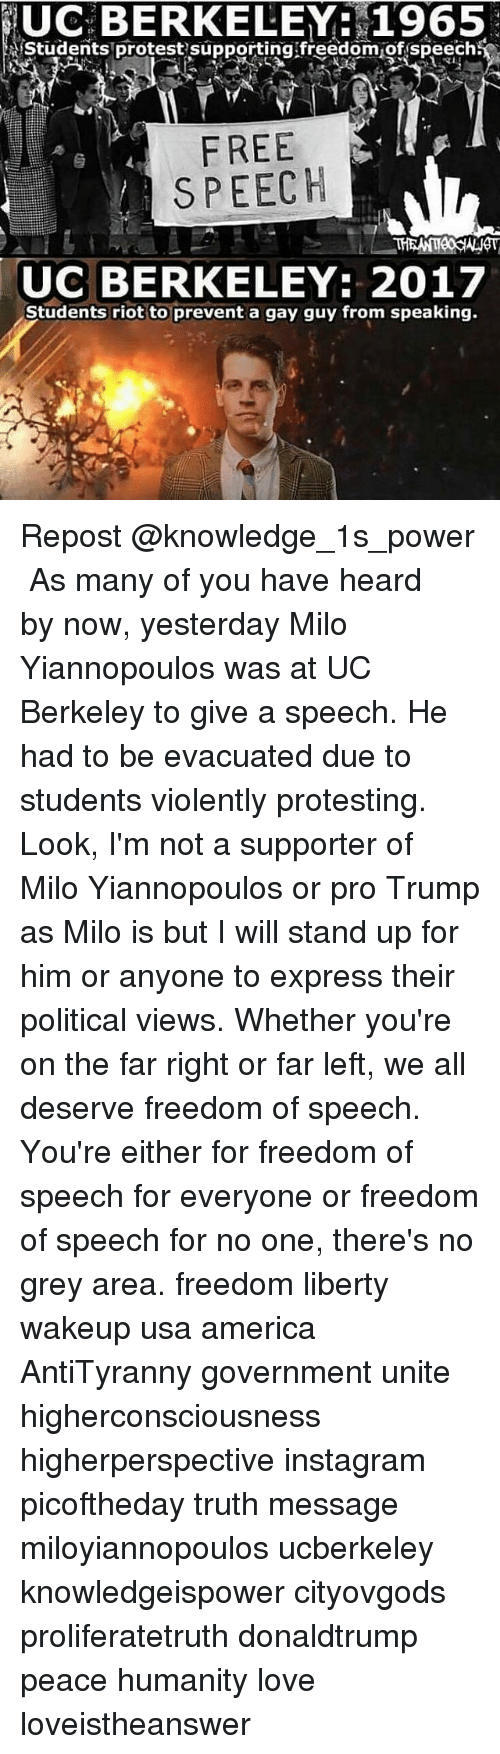 Memes, Politics, and UC Berkeley: UC BERKELEY: 1965  Students protest supporting freedom of speech  FREE  SPEECH  UC BERKELEY: 2017  Students riot to prevent a gay guy from speaking. Repost @knowledge_1s_power ・・・ As many of you have heard by now, yesterday Milo Yiannopoulos was at UC Berkeley to give a speech. He had to be evacuated due to students violently protesting. Look, I'm not a supporter of Milo Yiannopoulos or pro Trump as Milo is but I will stand up for him or anyone to express their political views. Whether you're on the far right or far left, we all deserve freedom of speech. You're either for freedom of speech for everyone or freedom of speech for no one, there's no grey area. freedom liberty wakeup usa america AntiTyranny government unite higherconsciousness higherperspective instagram picoftheday truth message miloyiannopoulos ucberkeley knowledgeispower cityovgods proliferatetruth donaldtrump peace humanity love loveistheanswer